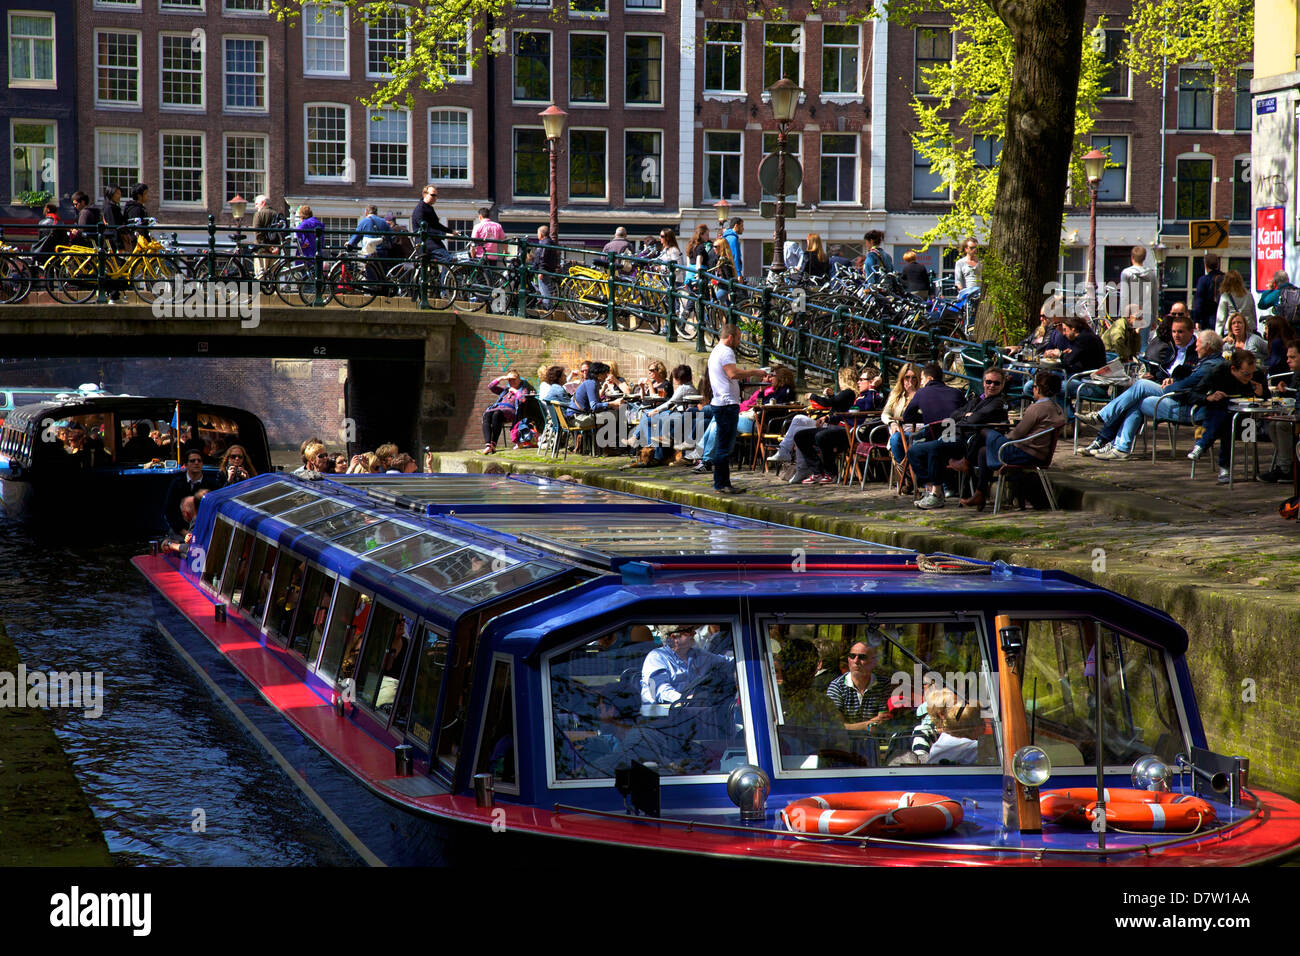 Tourist boat on Leliegracht, Amsterdam, Netherlands - Stock Image